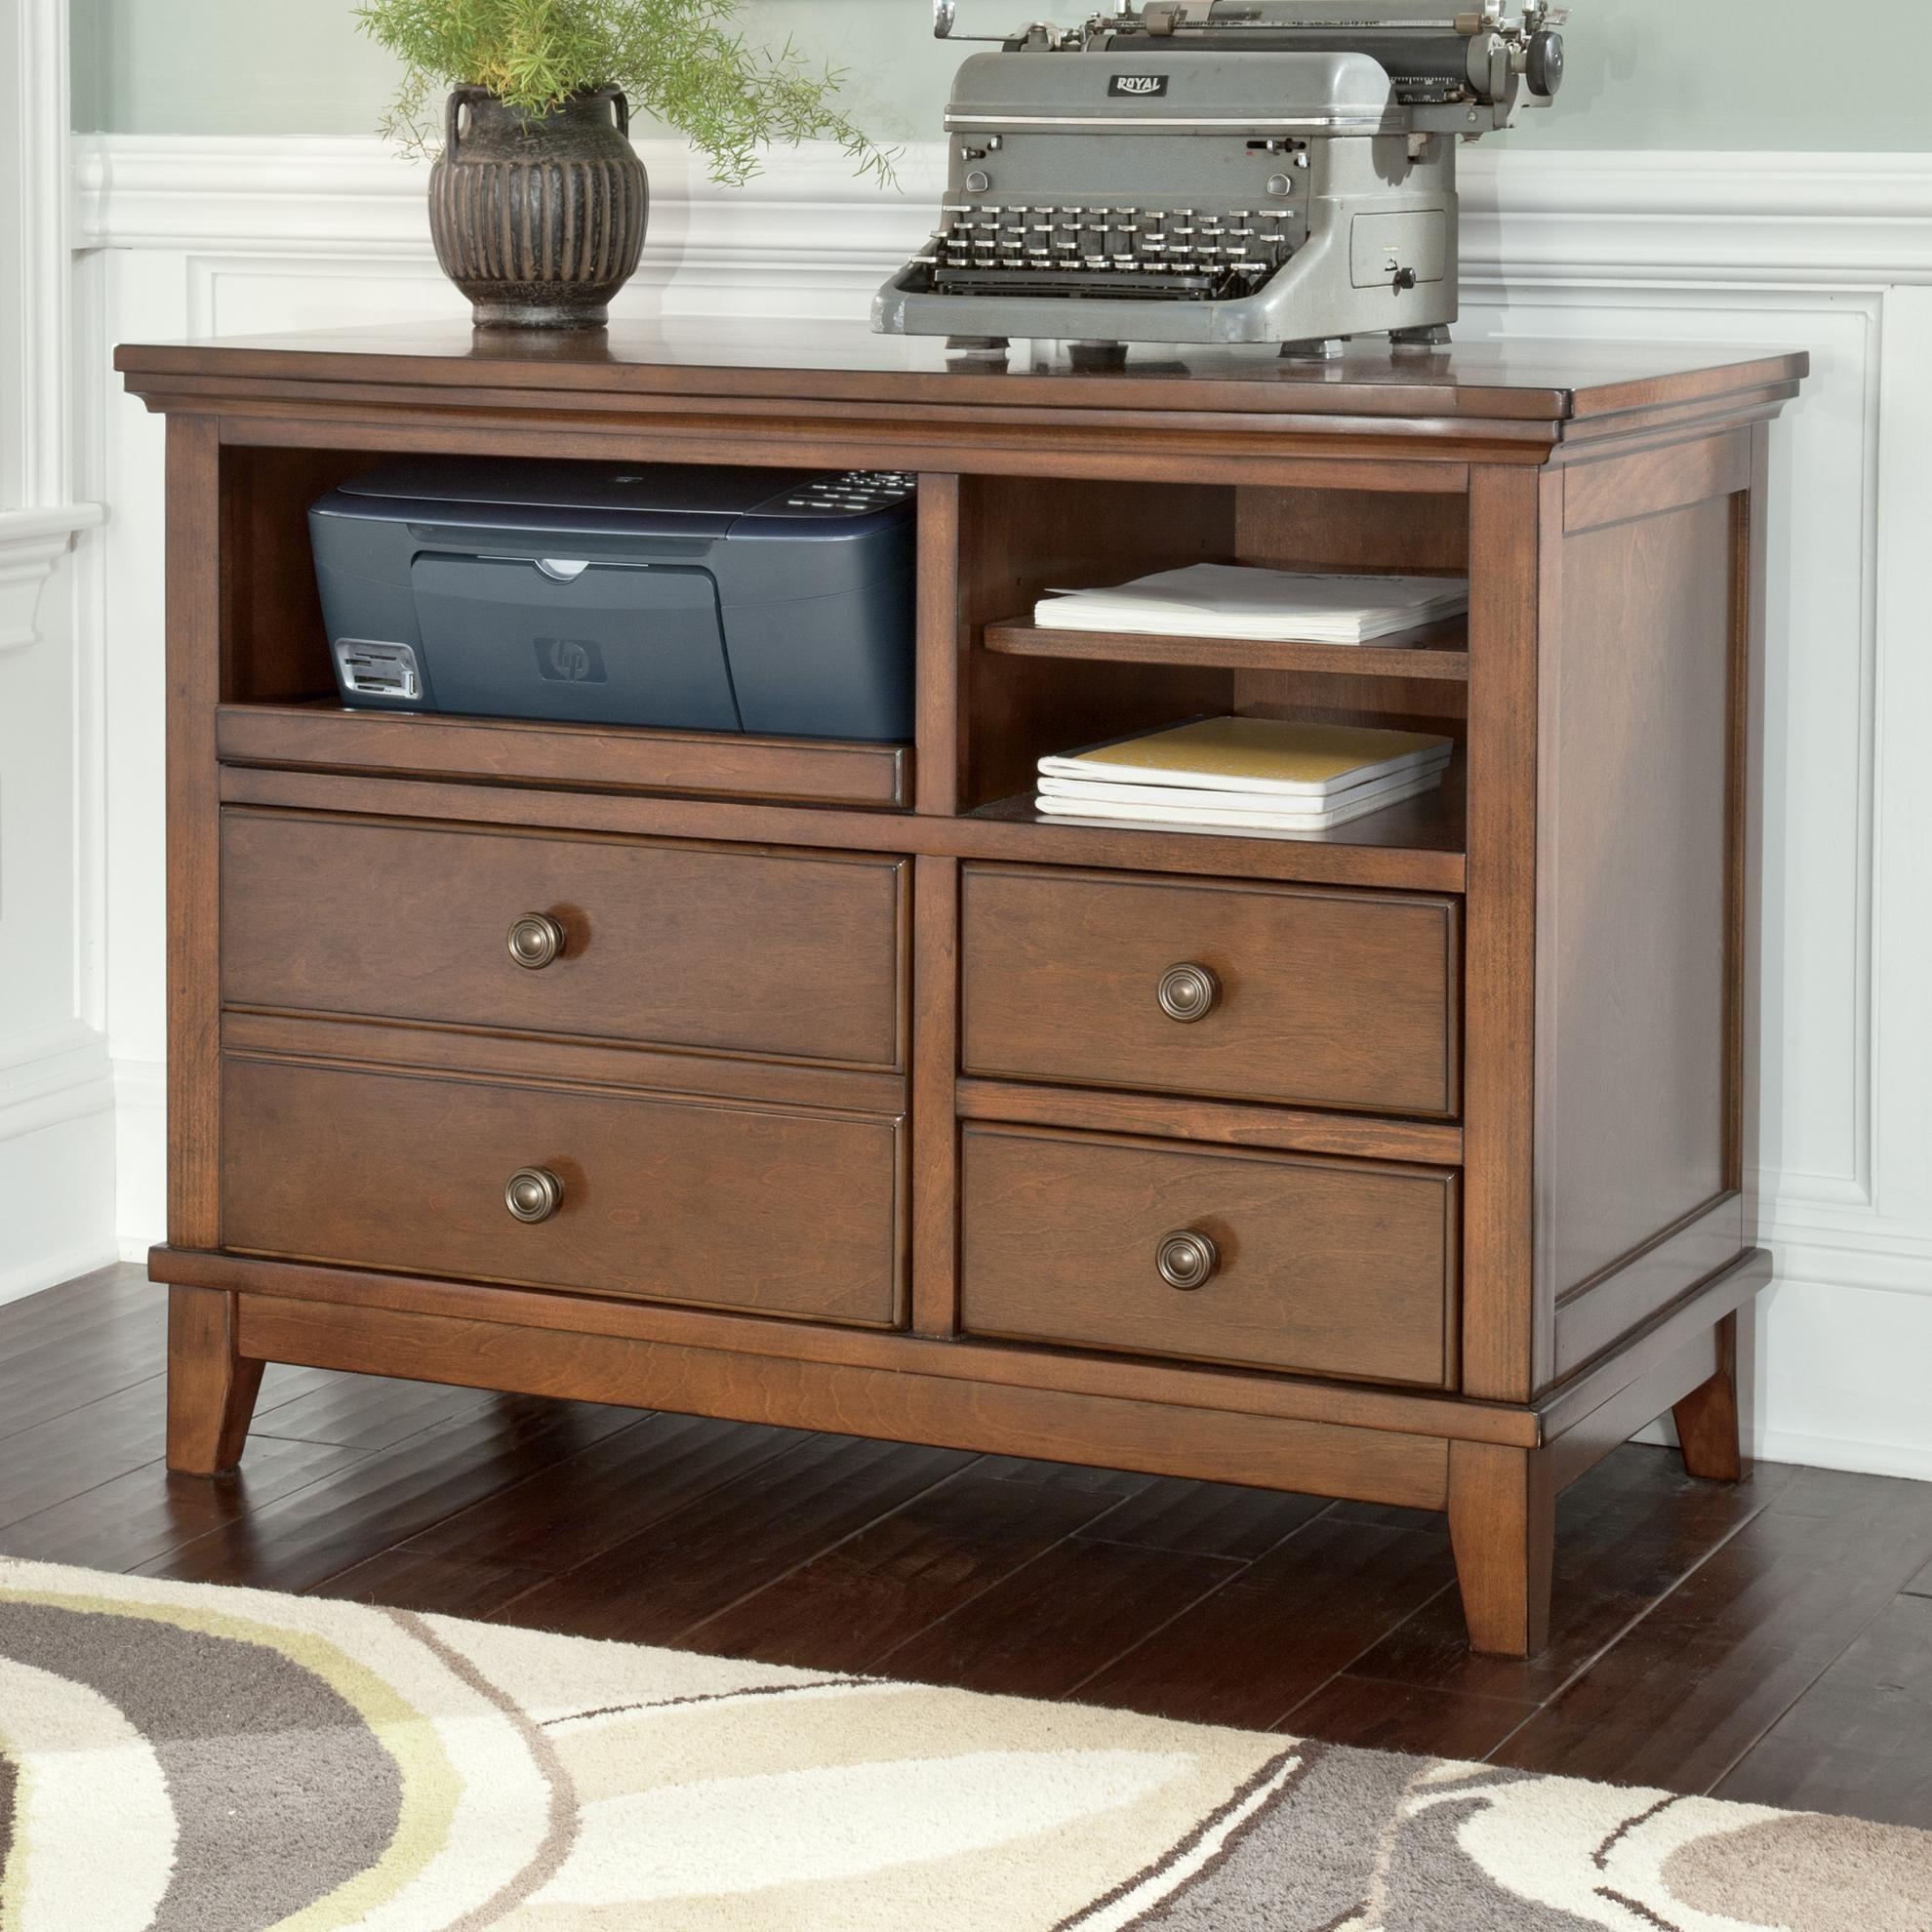 Signature Design by Ashley Burkesville Home Office Cabinet - Item Number: H565-40